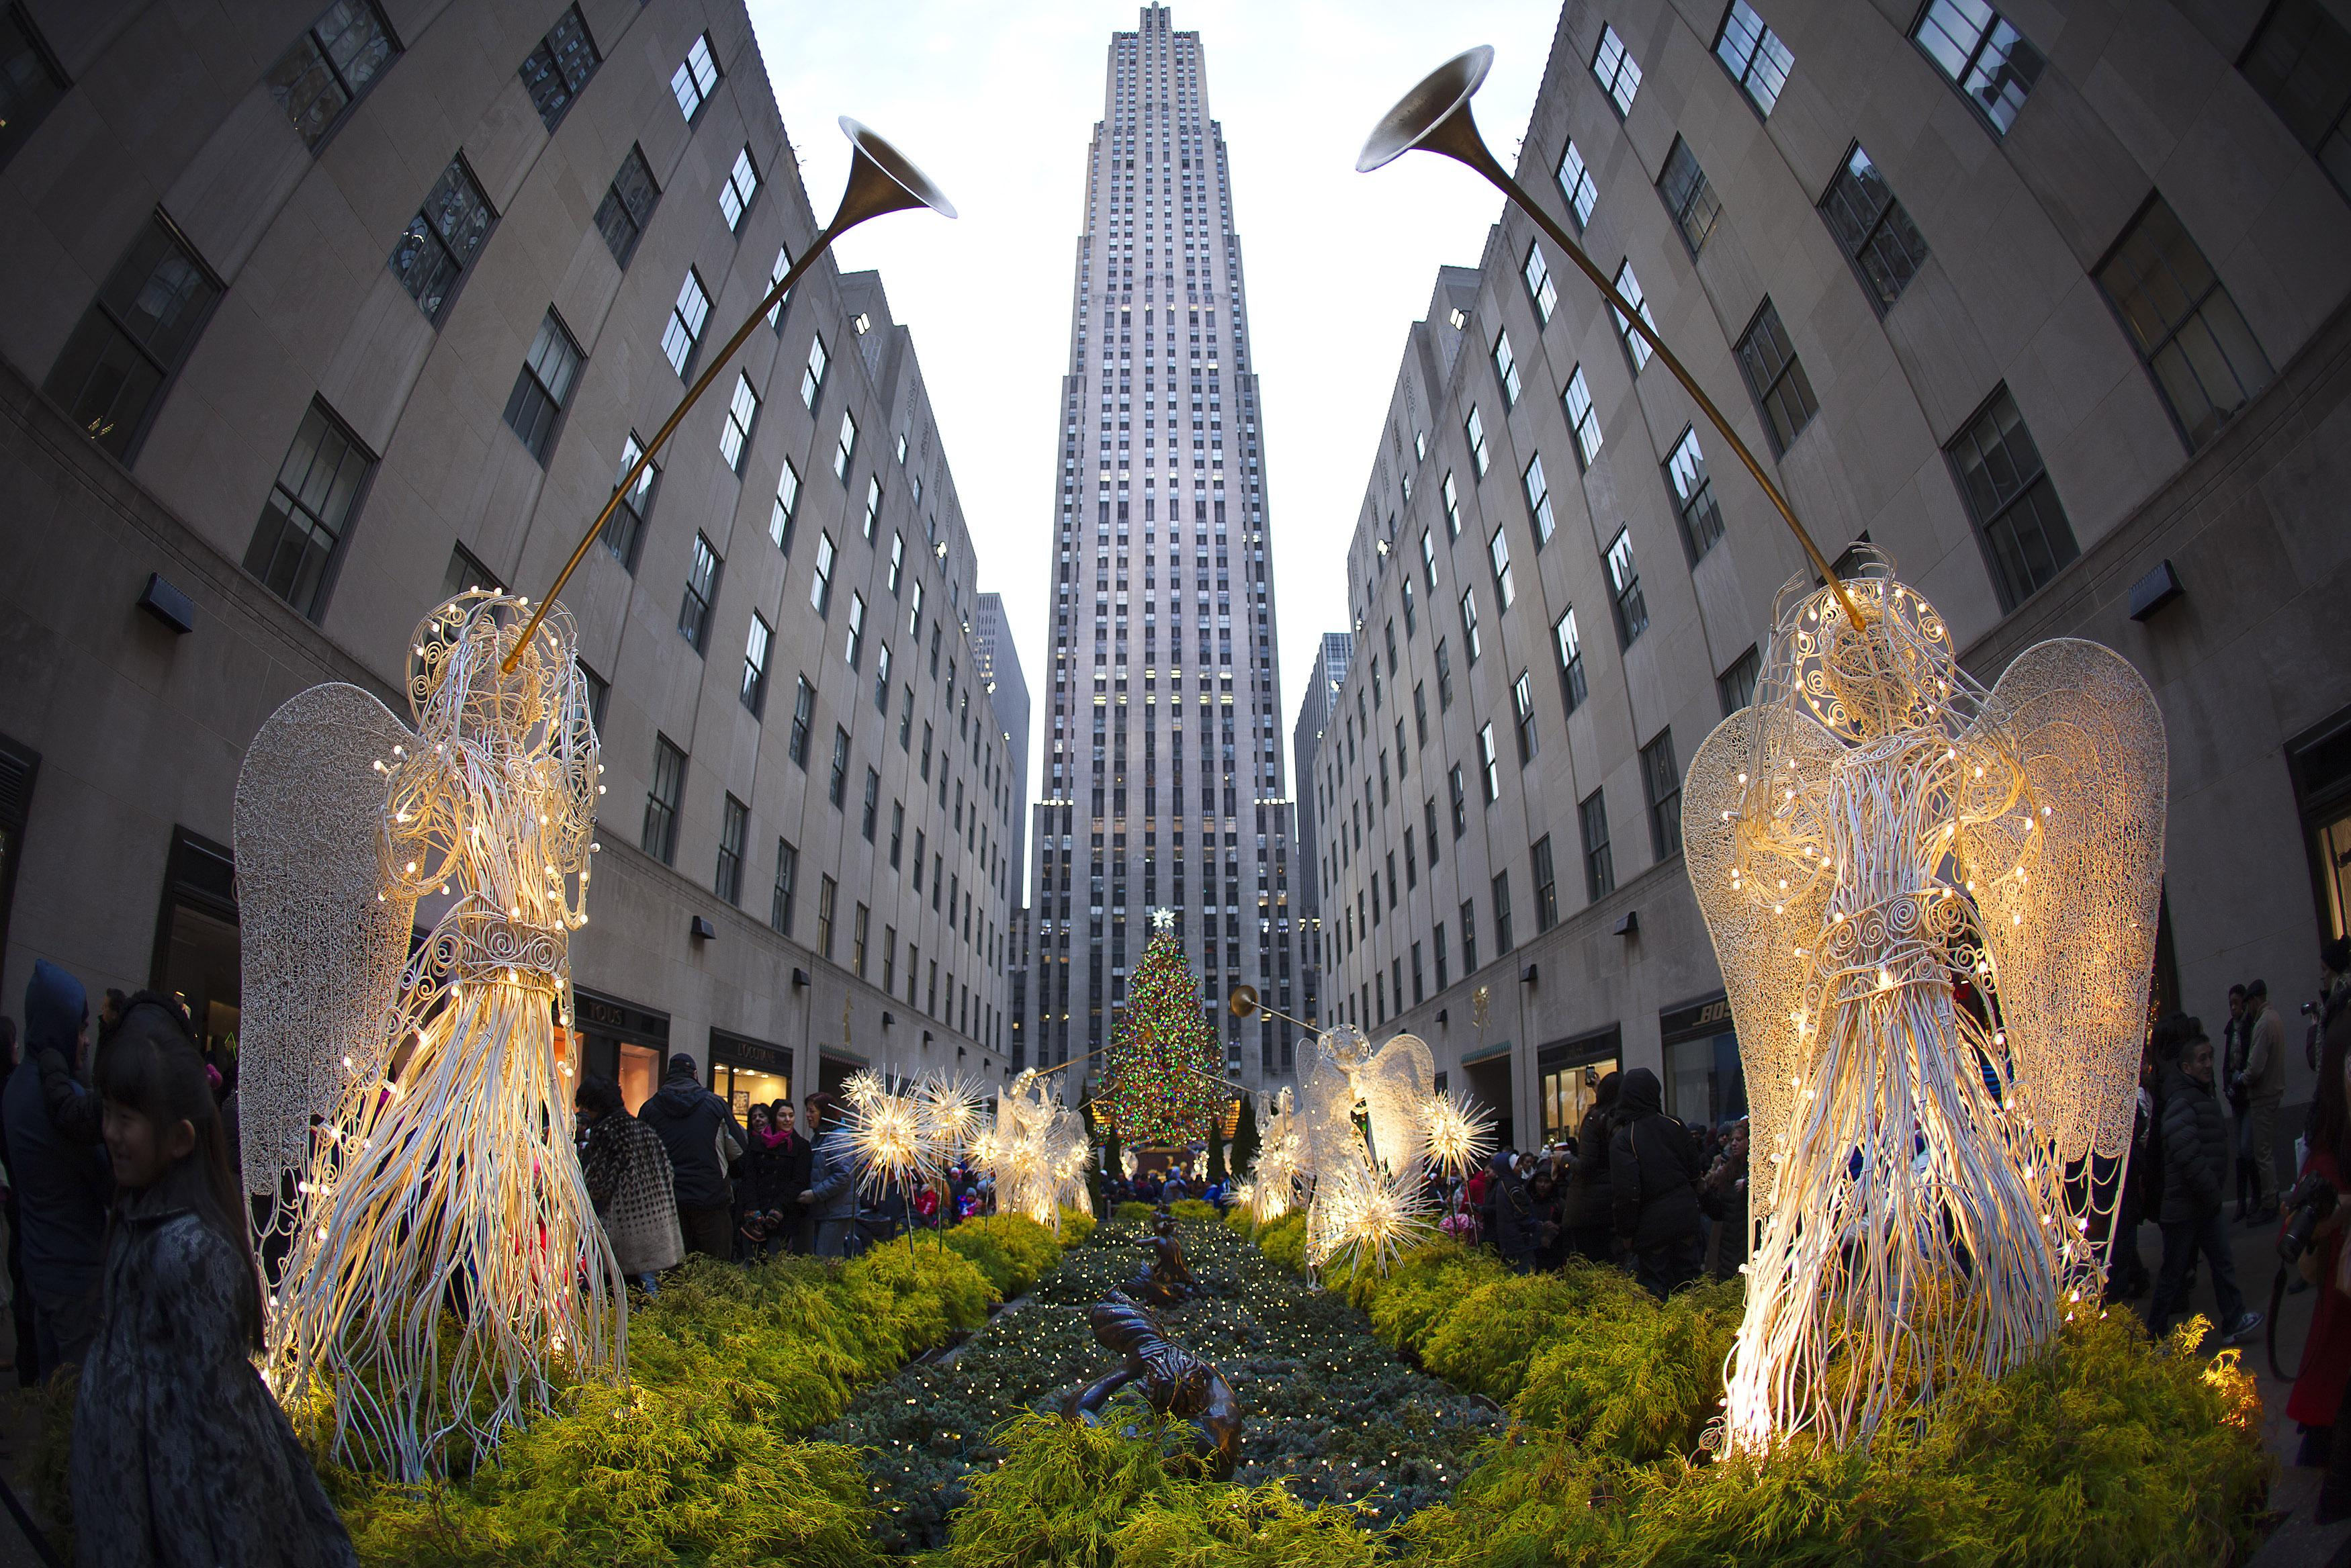 Christmas in new york top 13 things to do in nyc during for Things to see and do in nyc